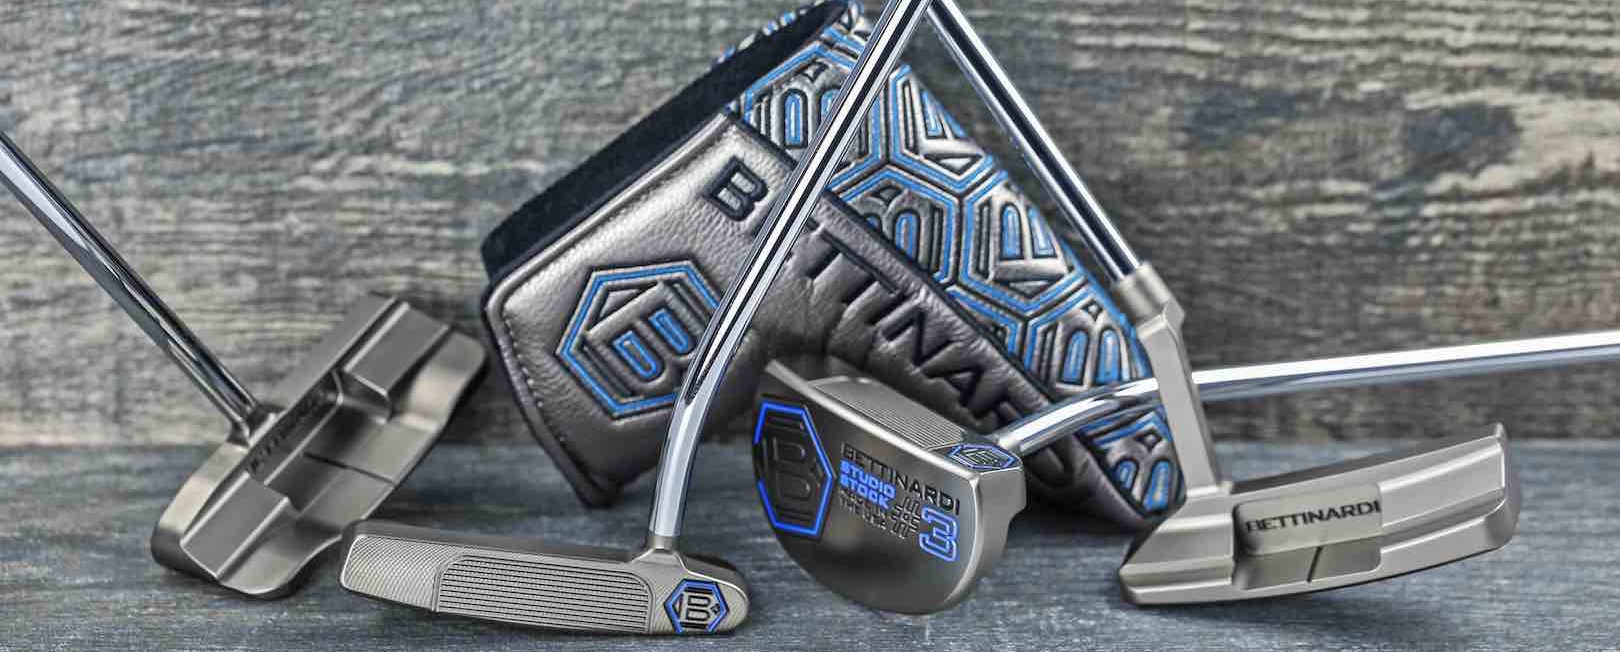 The Bettinardi Inovai 3.0